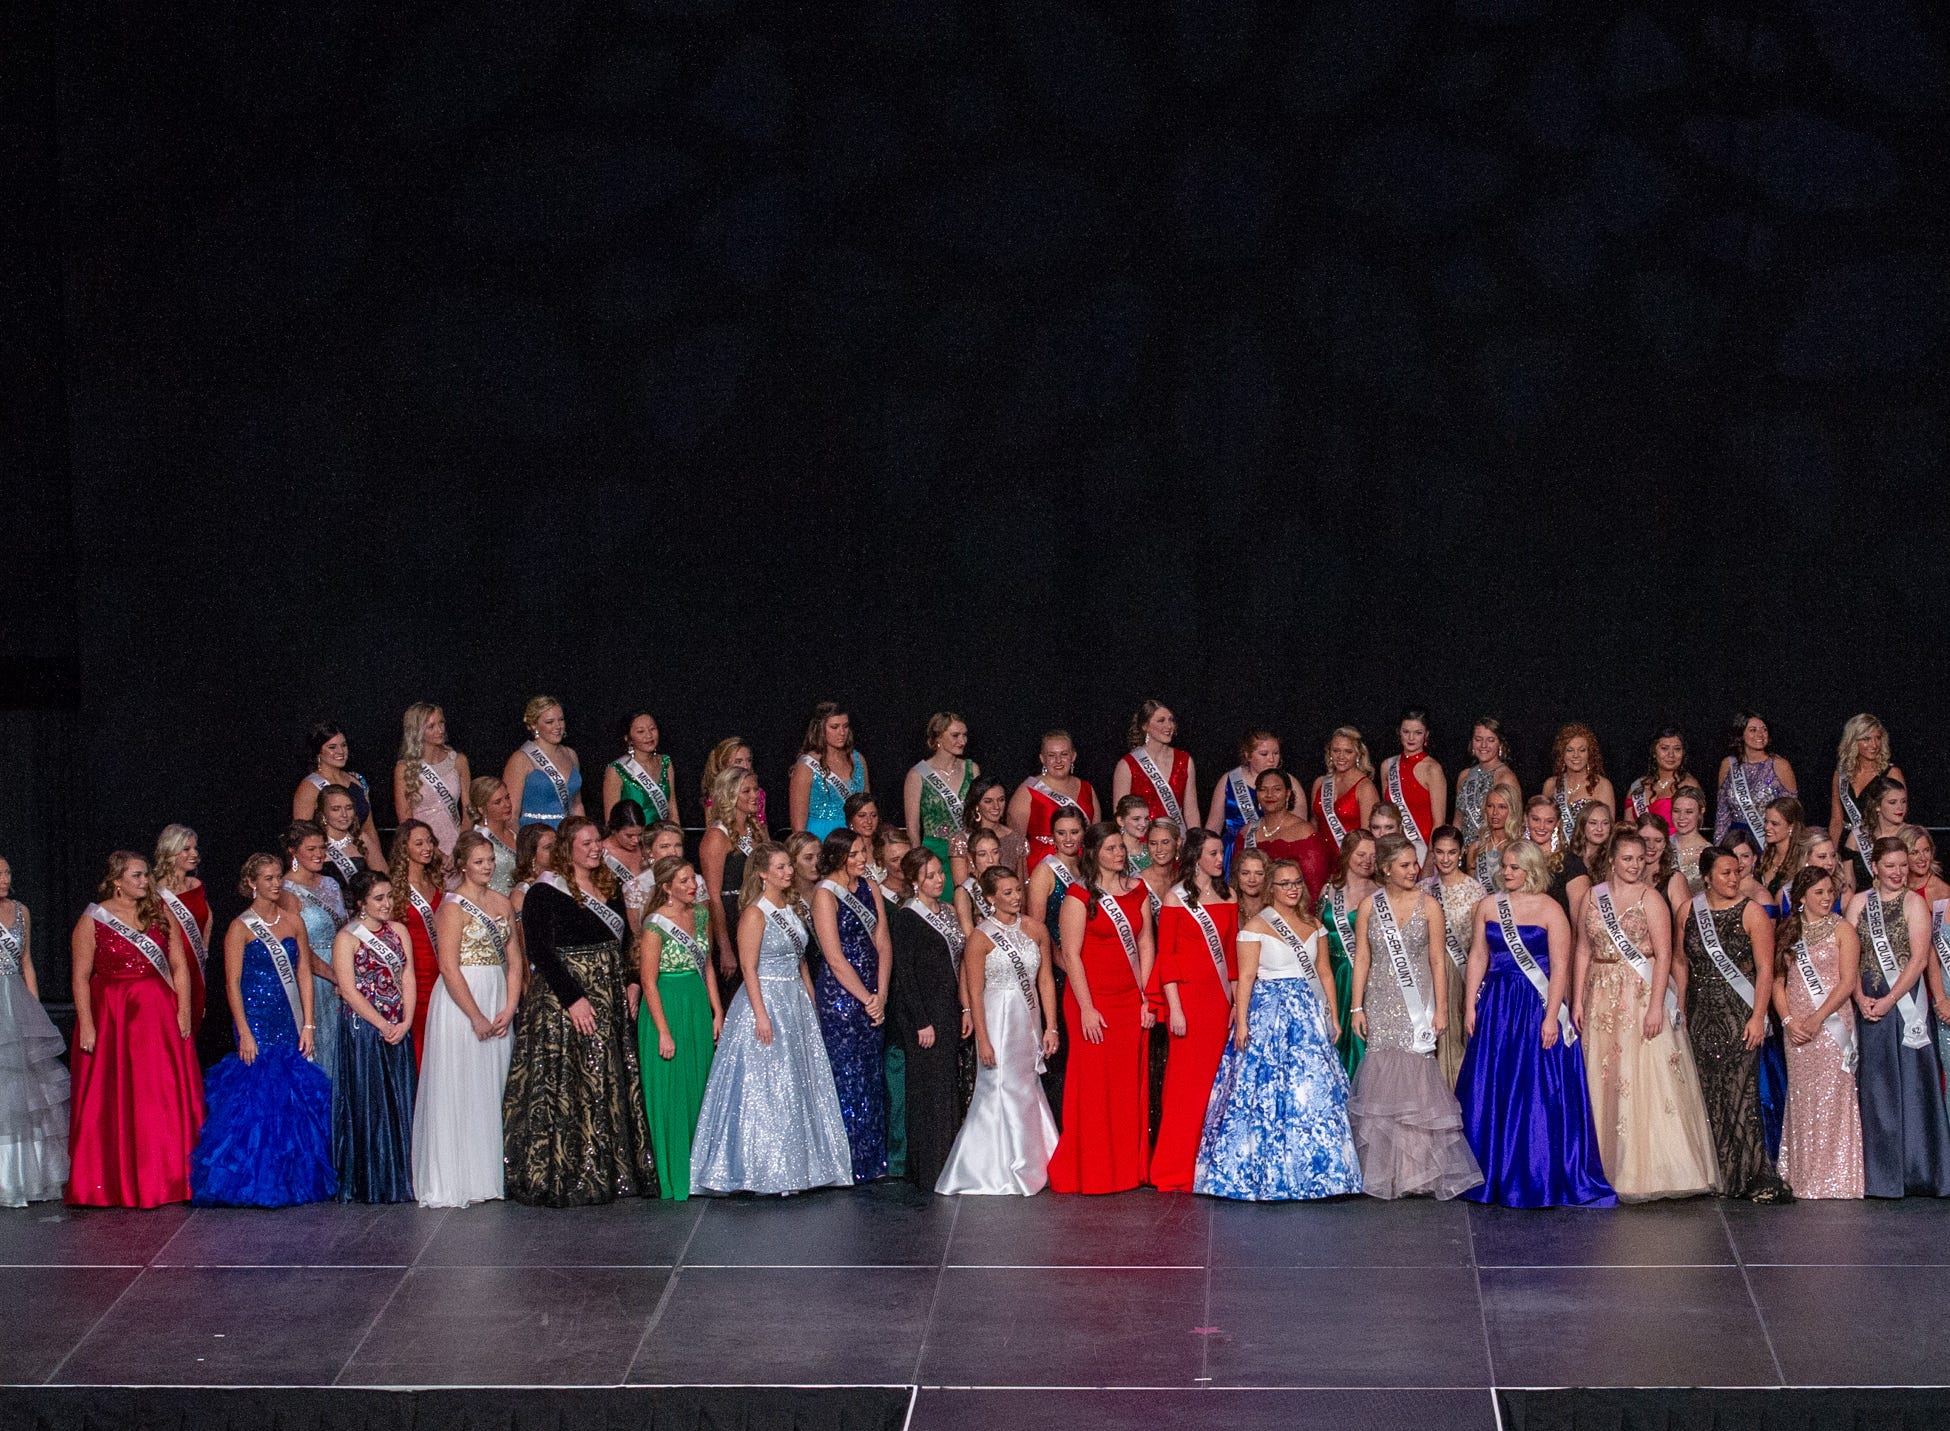 Eighty-seven contestants fill the stage during the 61st Indiana State Fair Queen Pageant at the Indiana State Fairgrounds in Indianapolis on Sunday, Jan. 6, 2019.